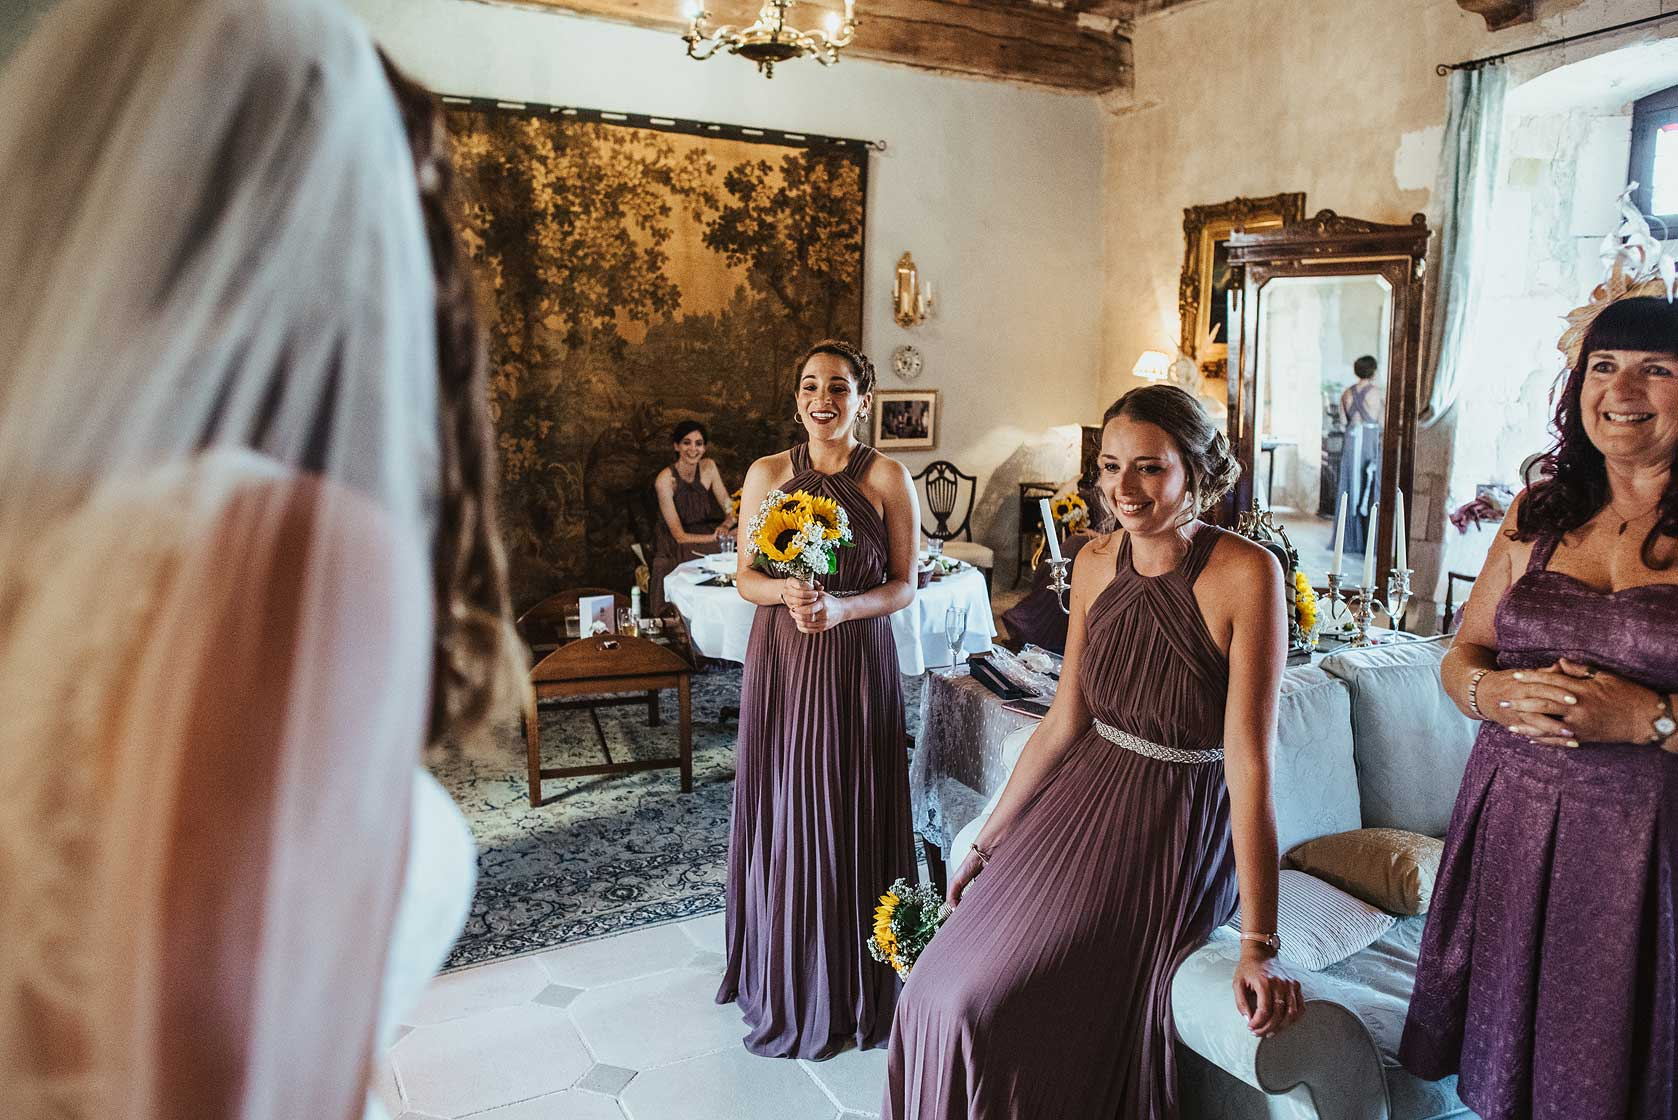 Reportage Wedding Photography in Languedoc